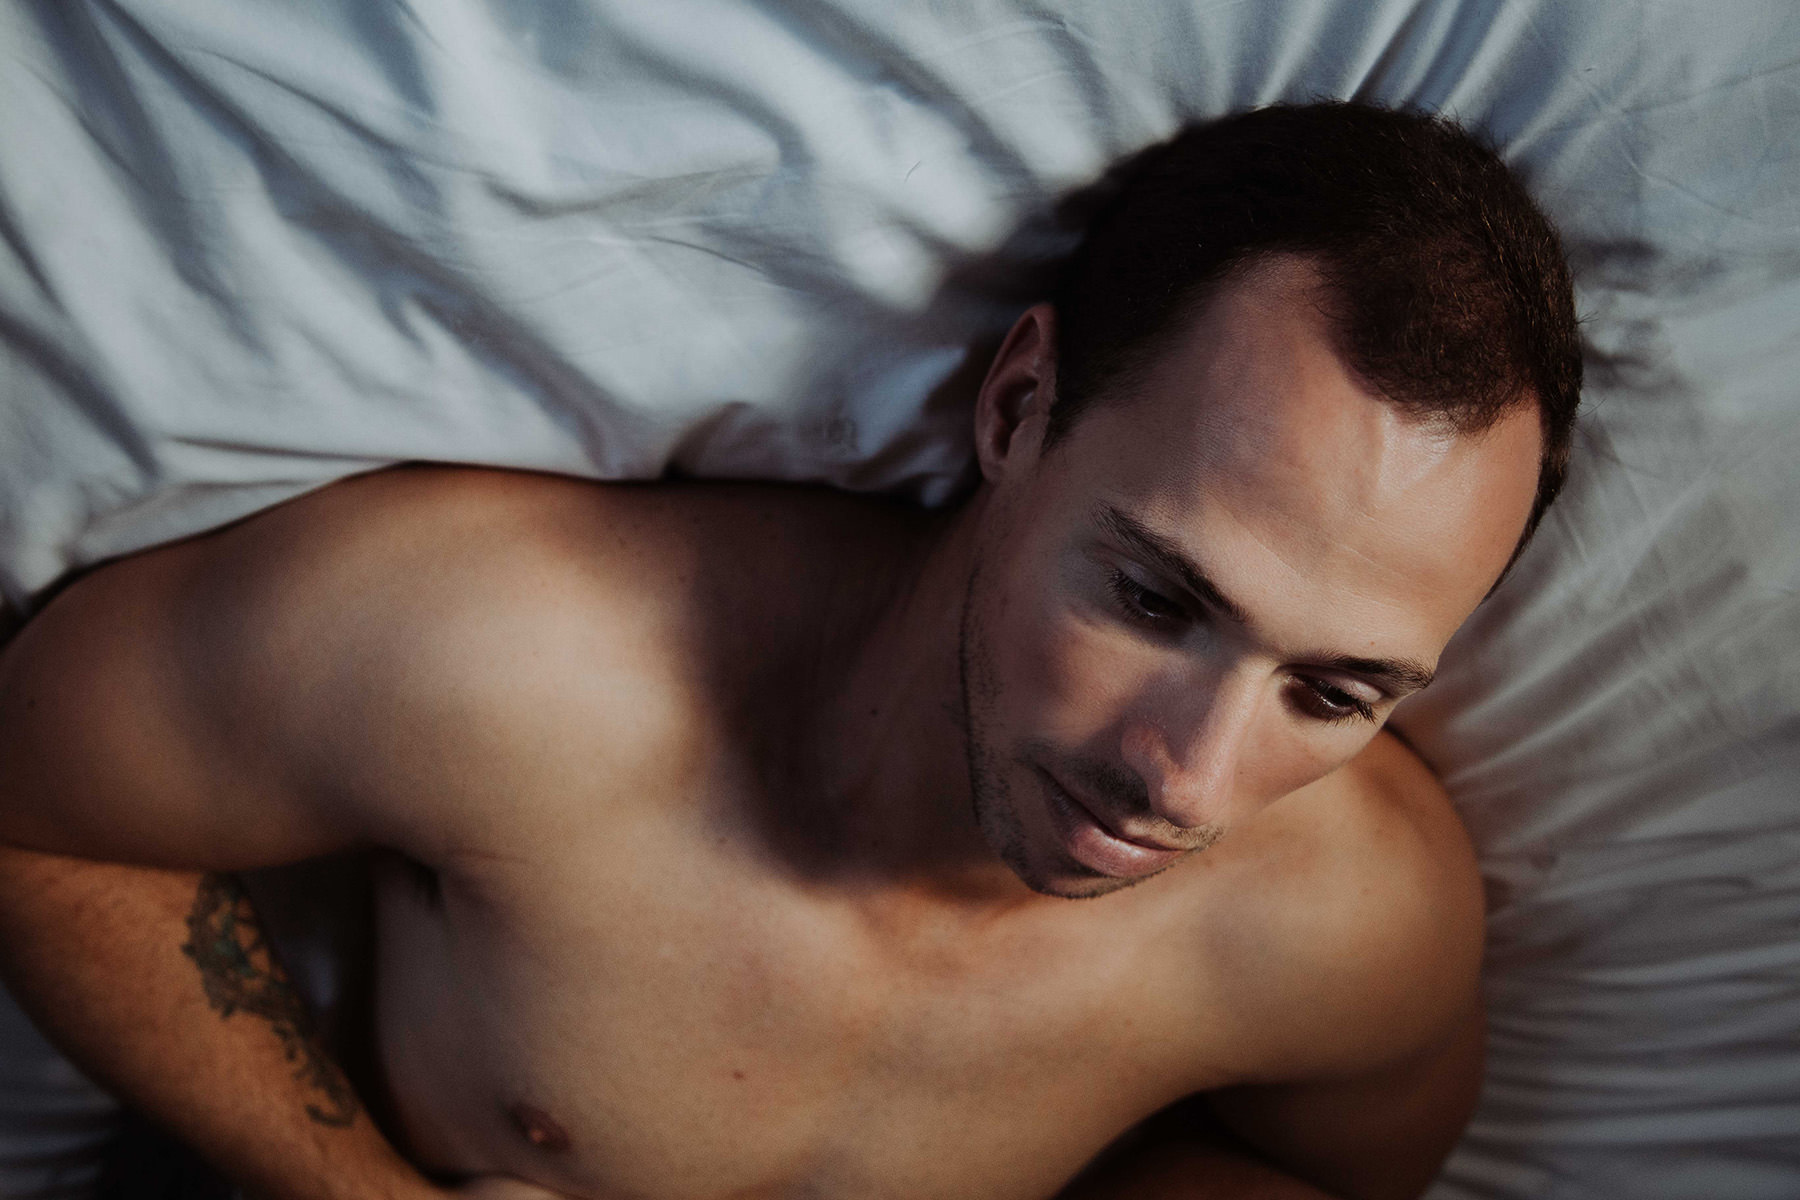 Fine art portrait of melancholic man lying in bed with soft window light